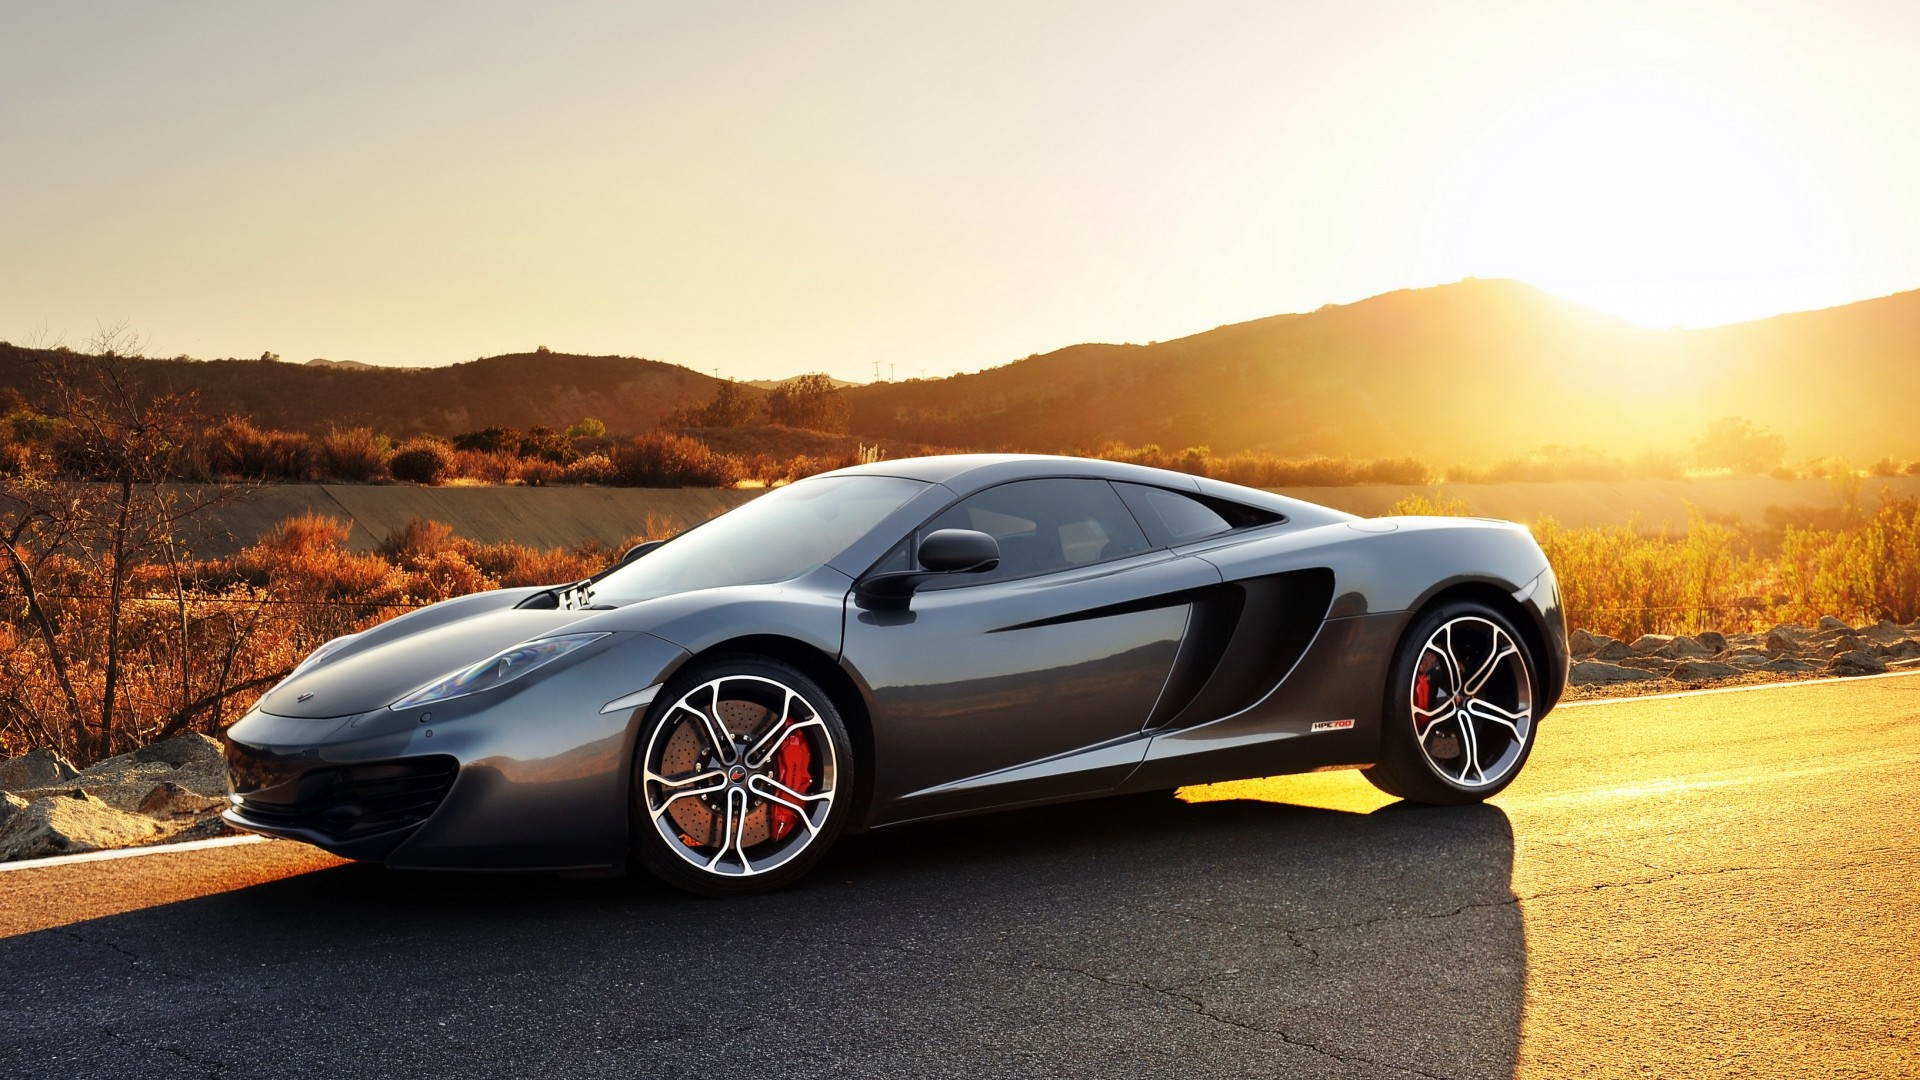 Sport Cars Wallpaper Hd 1080p: Cool Car Wallpapers HD 1080p (72+ Images